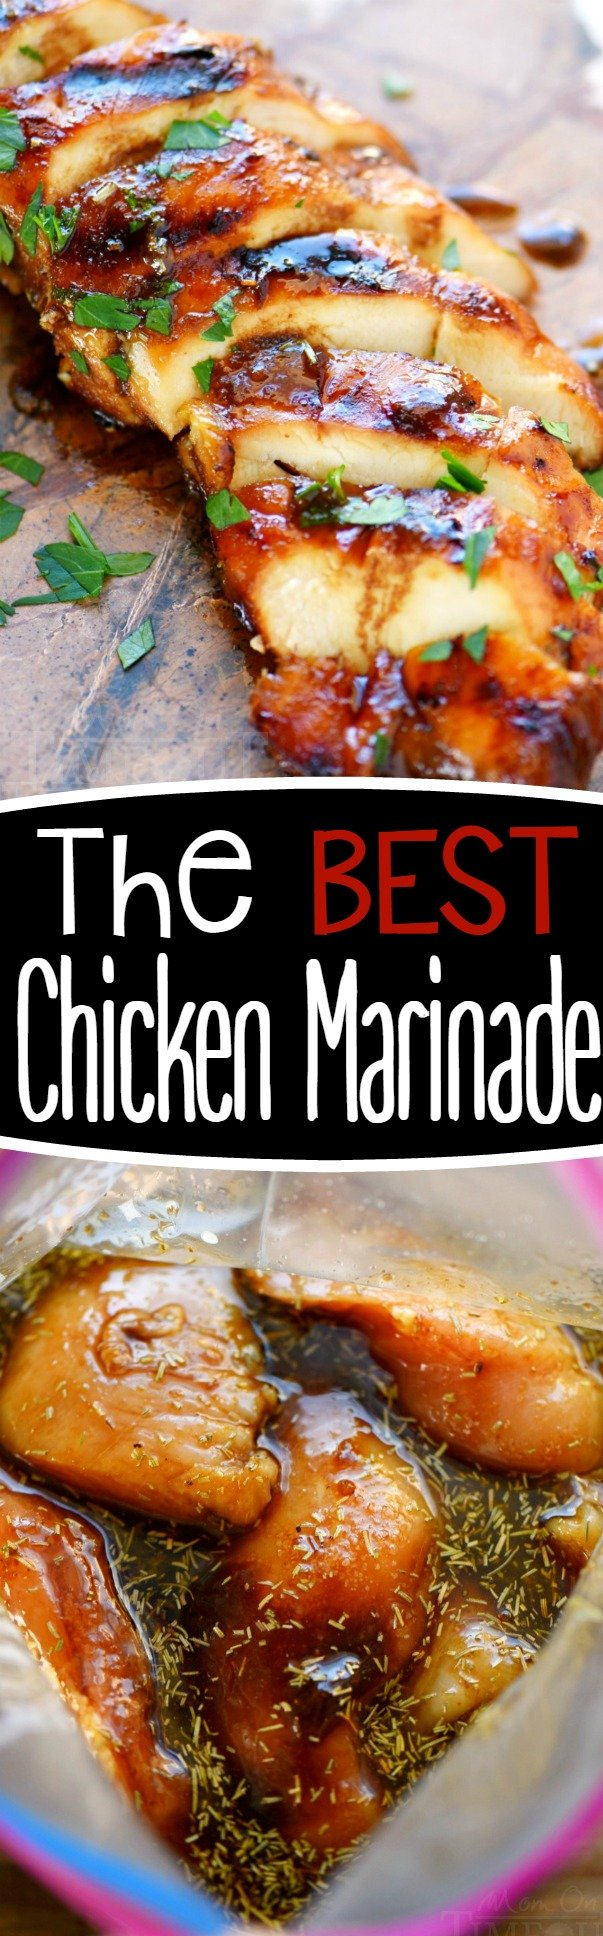 best-chicken-marinade-recipe-collage